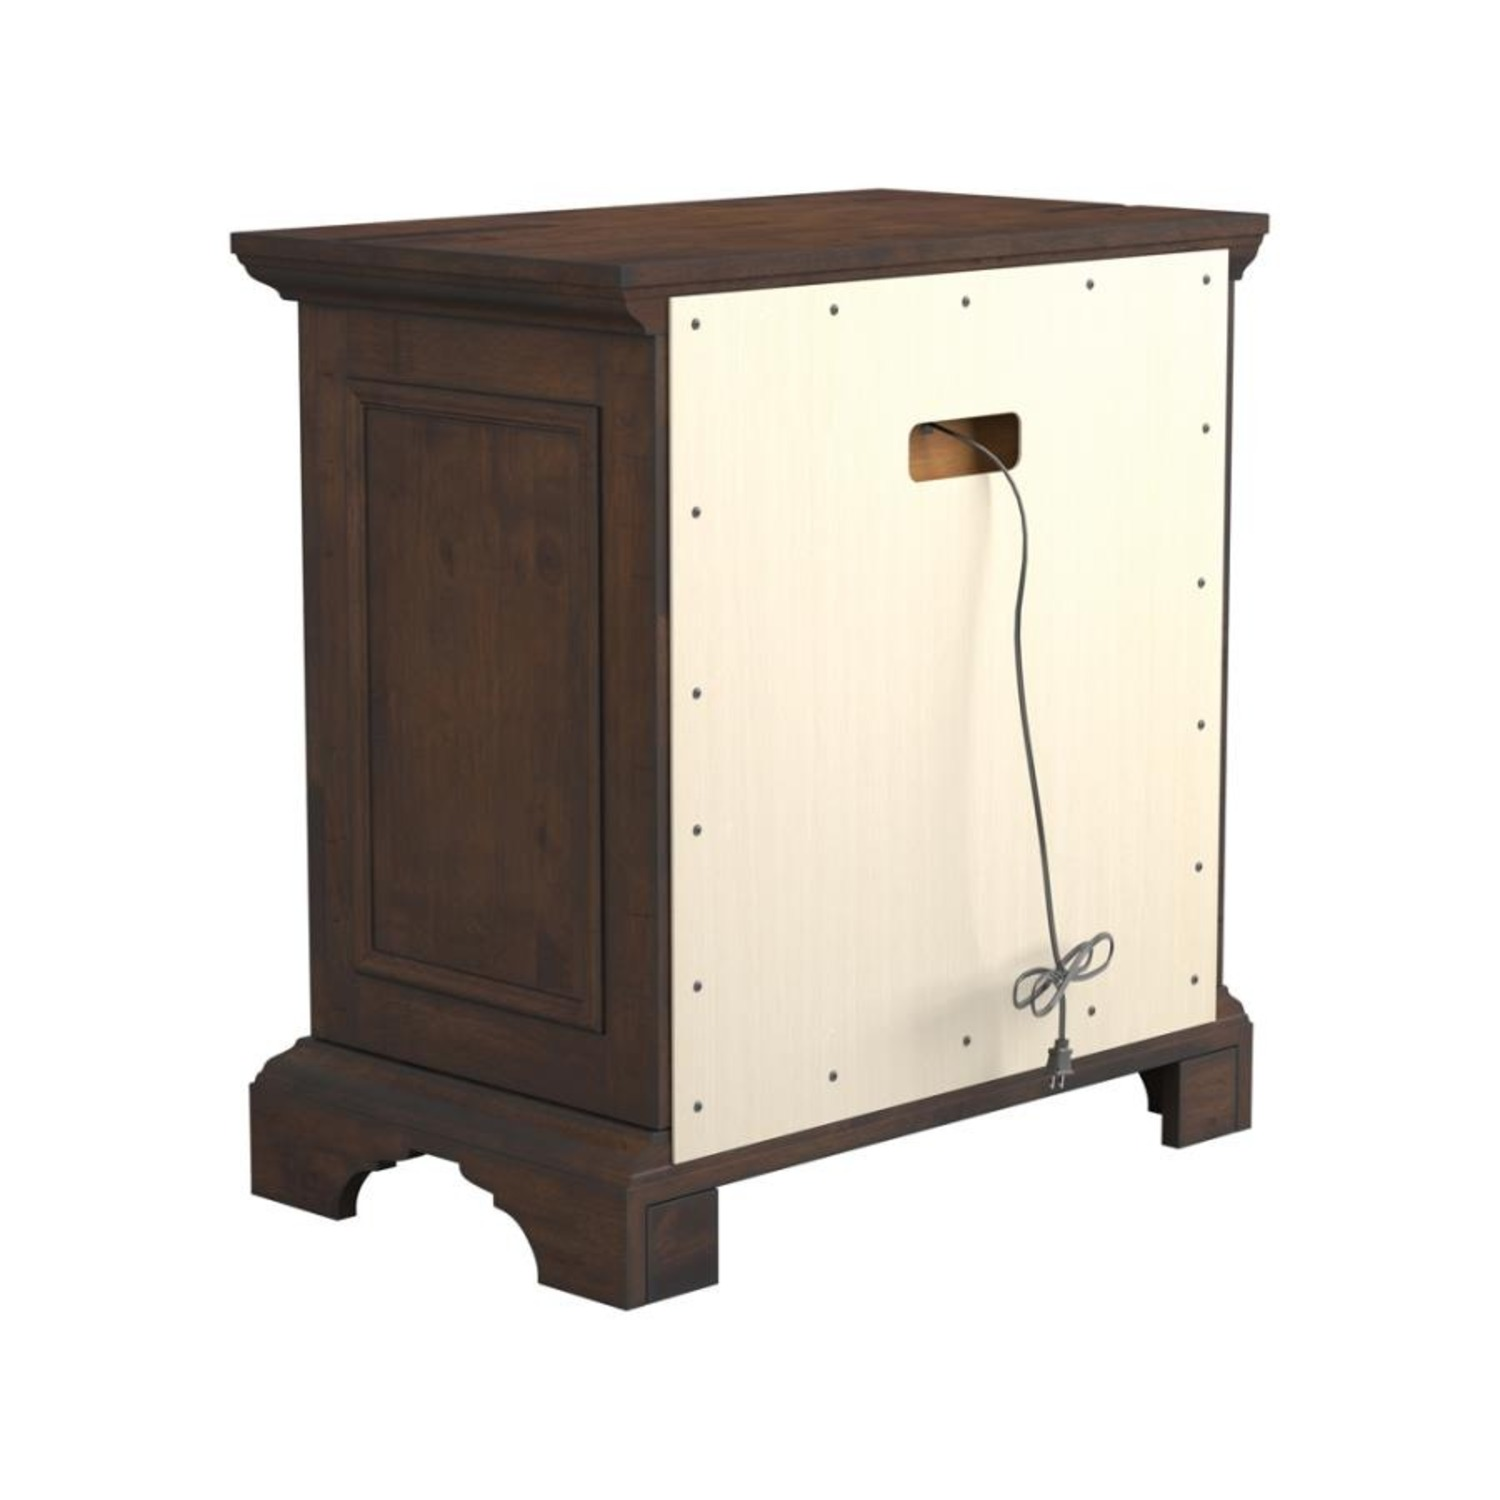 Nightstand In Vintage Bourbon & Rustic Finish - image-4